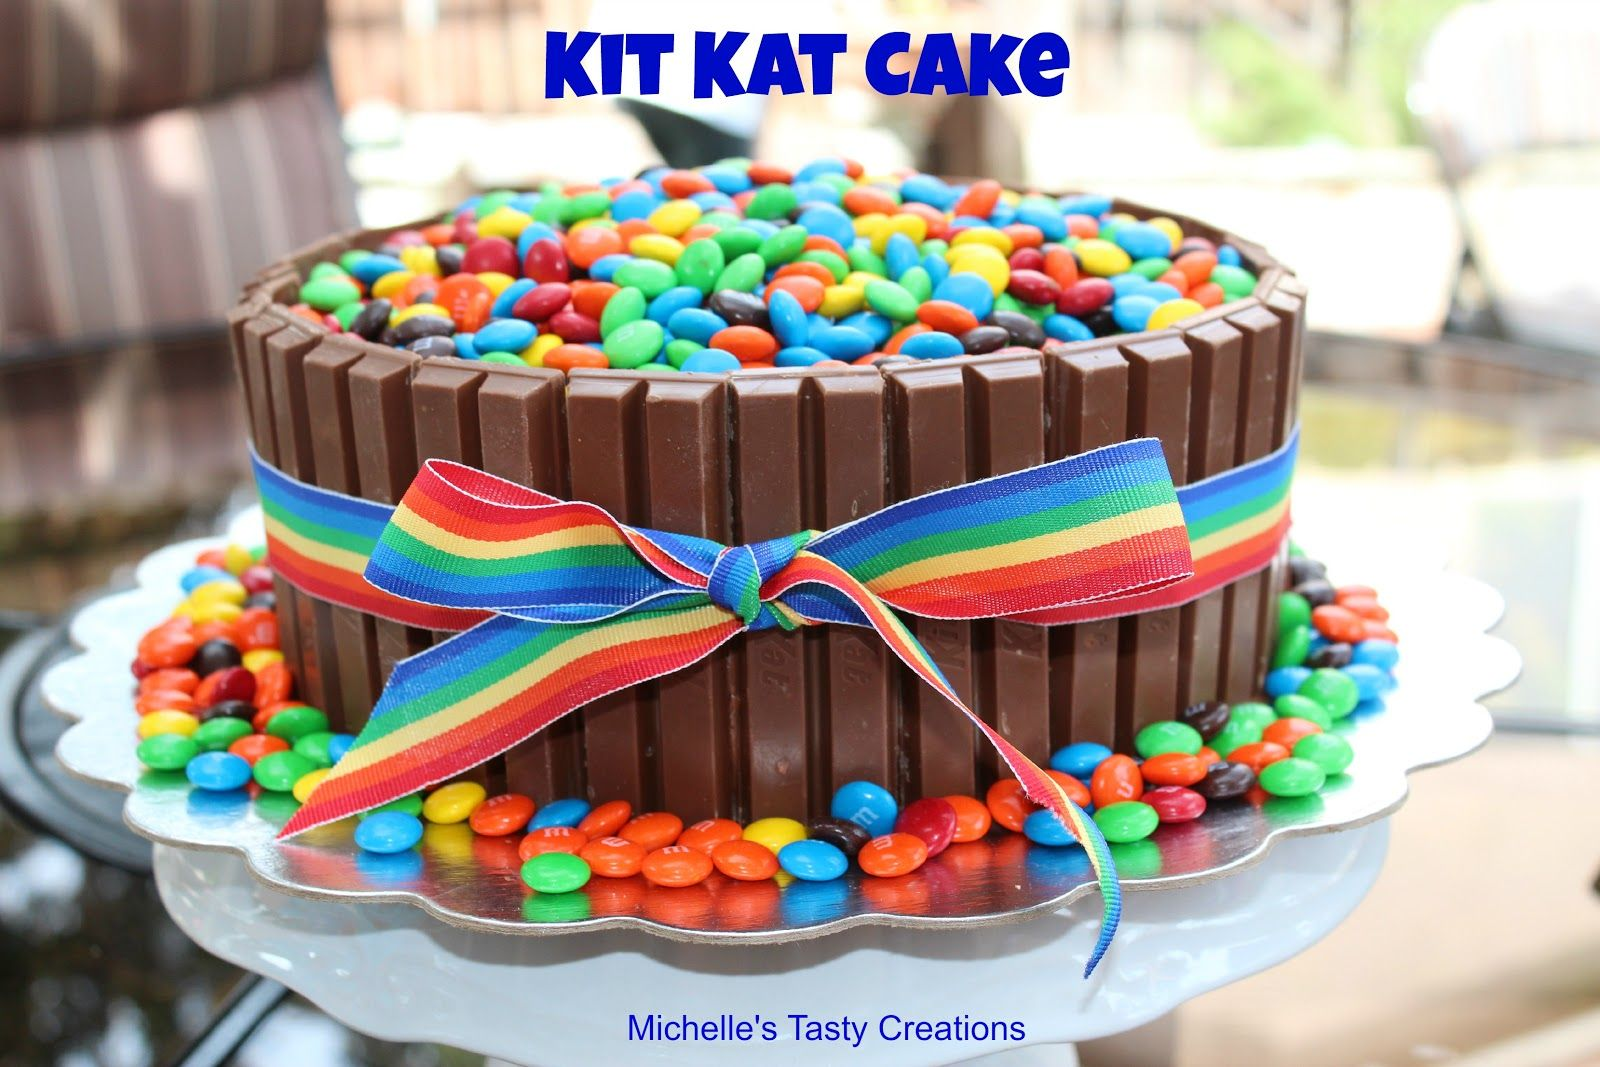 Michelles Tasty Creations Kit Kat Cake Im Going To Make This For